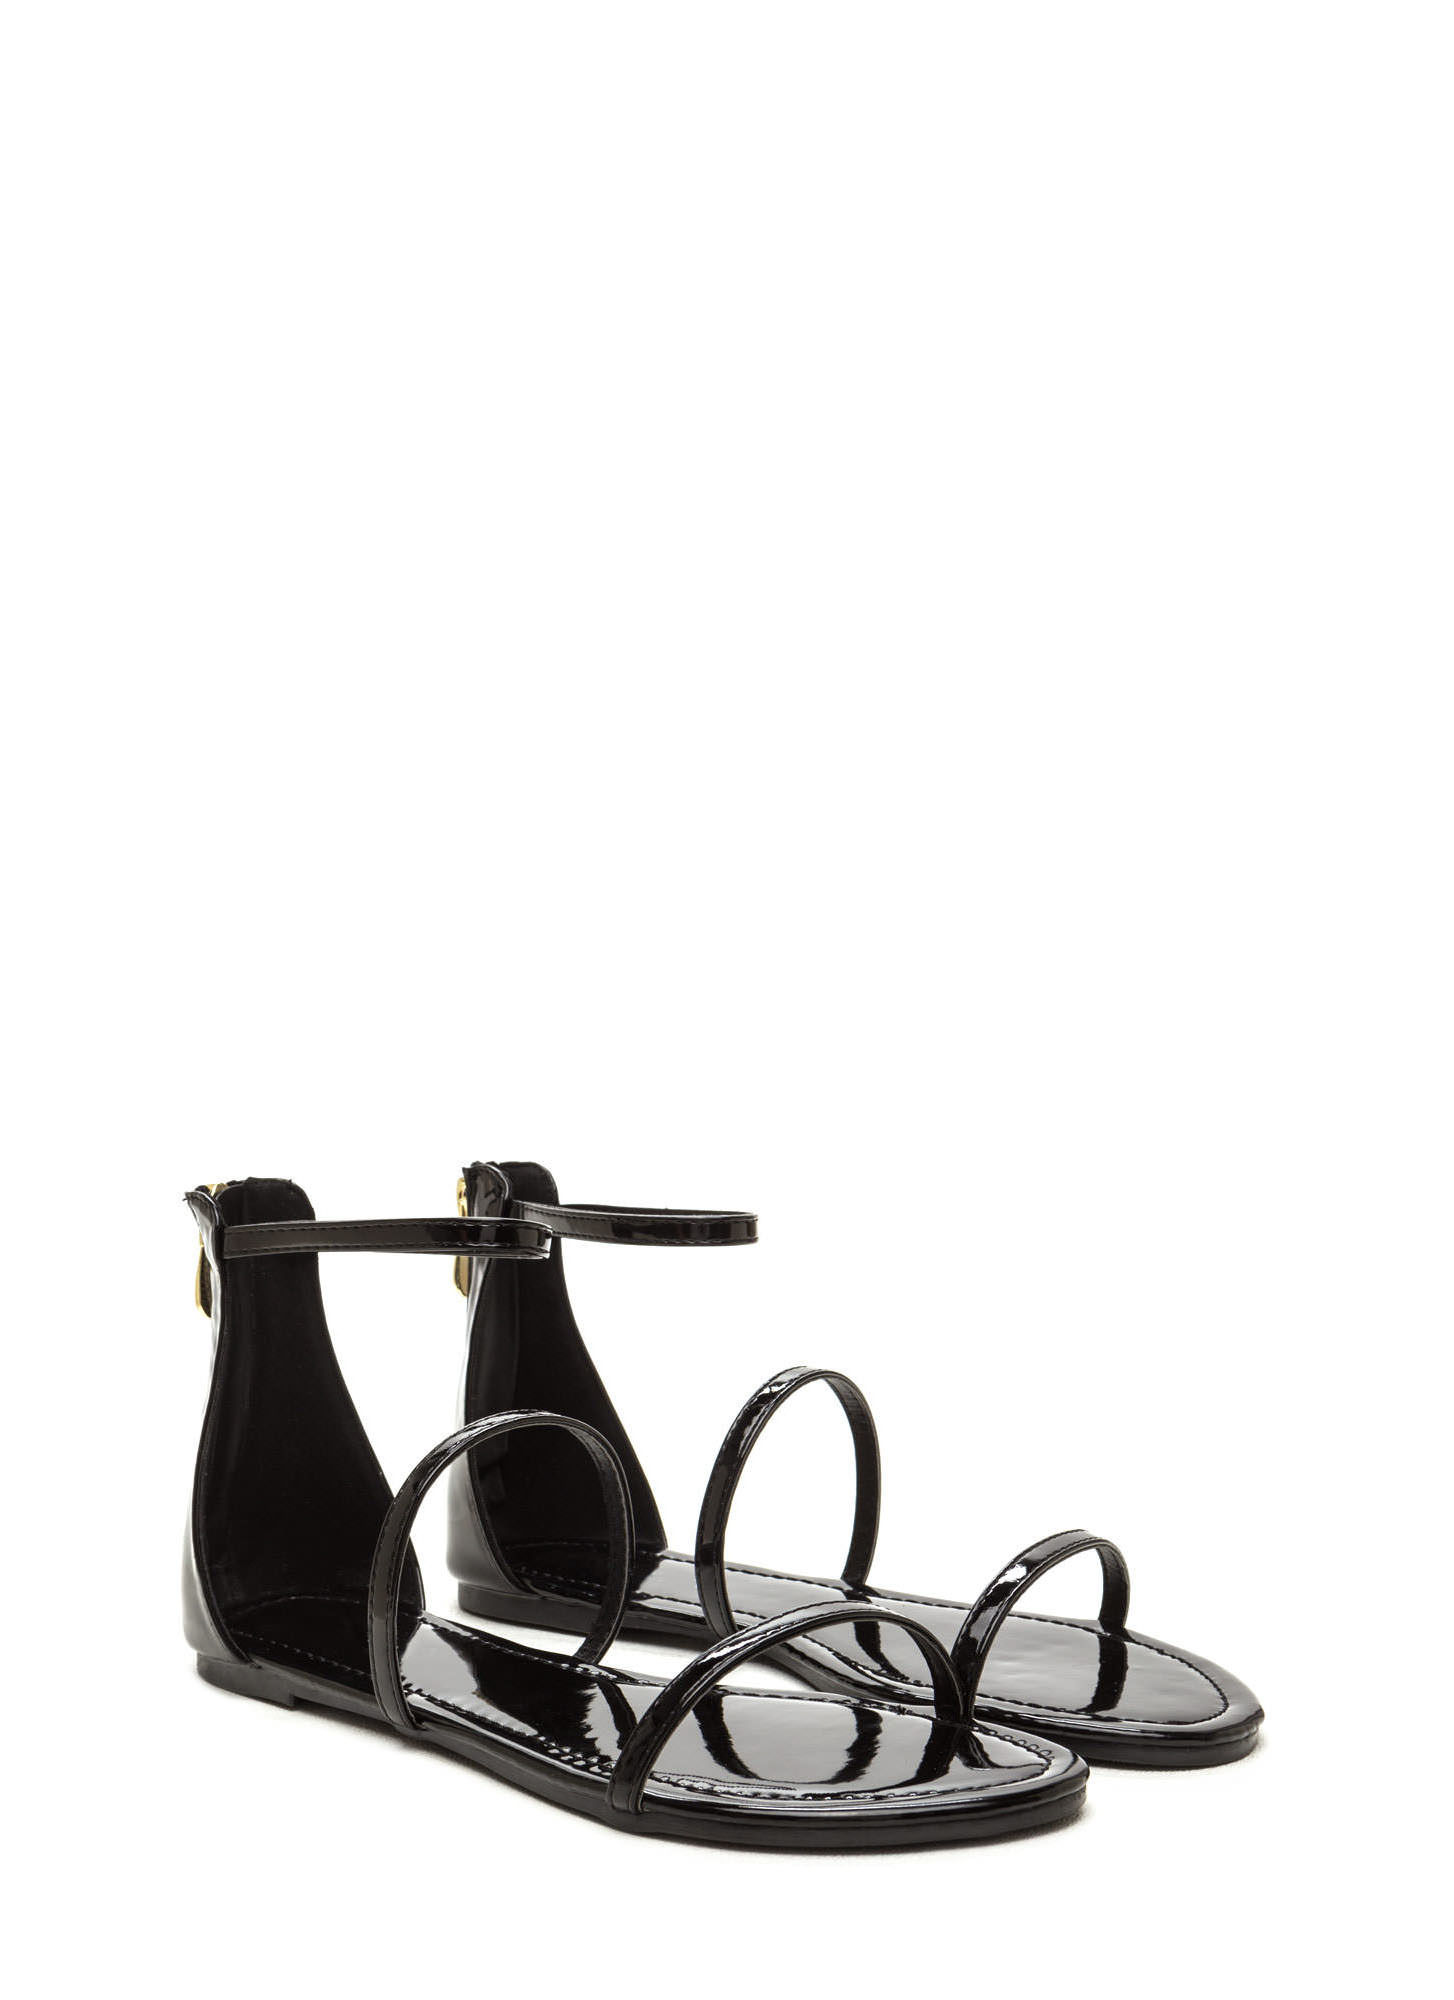 Triple Whammy Faux Leather Sandals BLACK